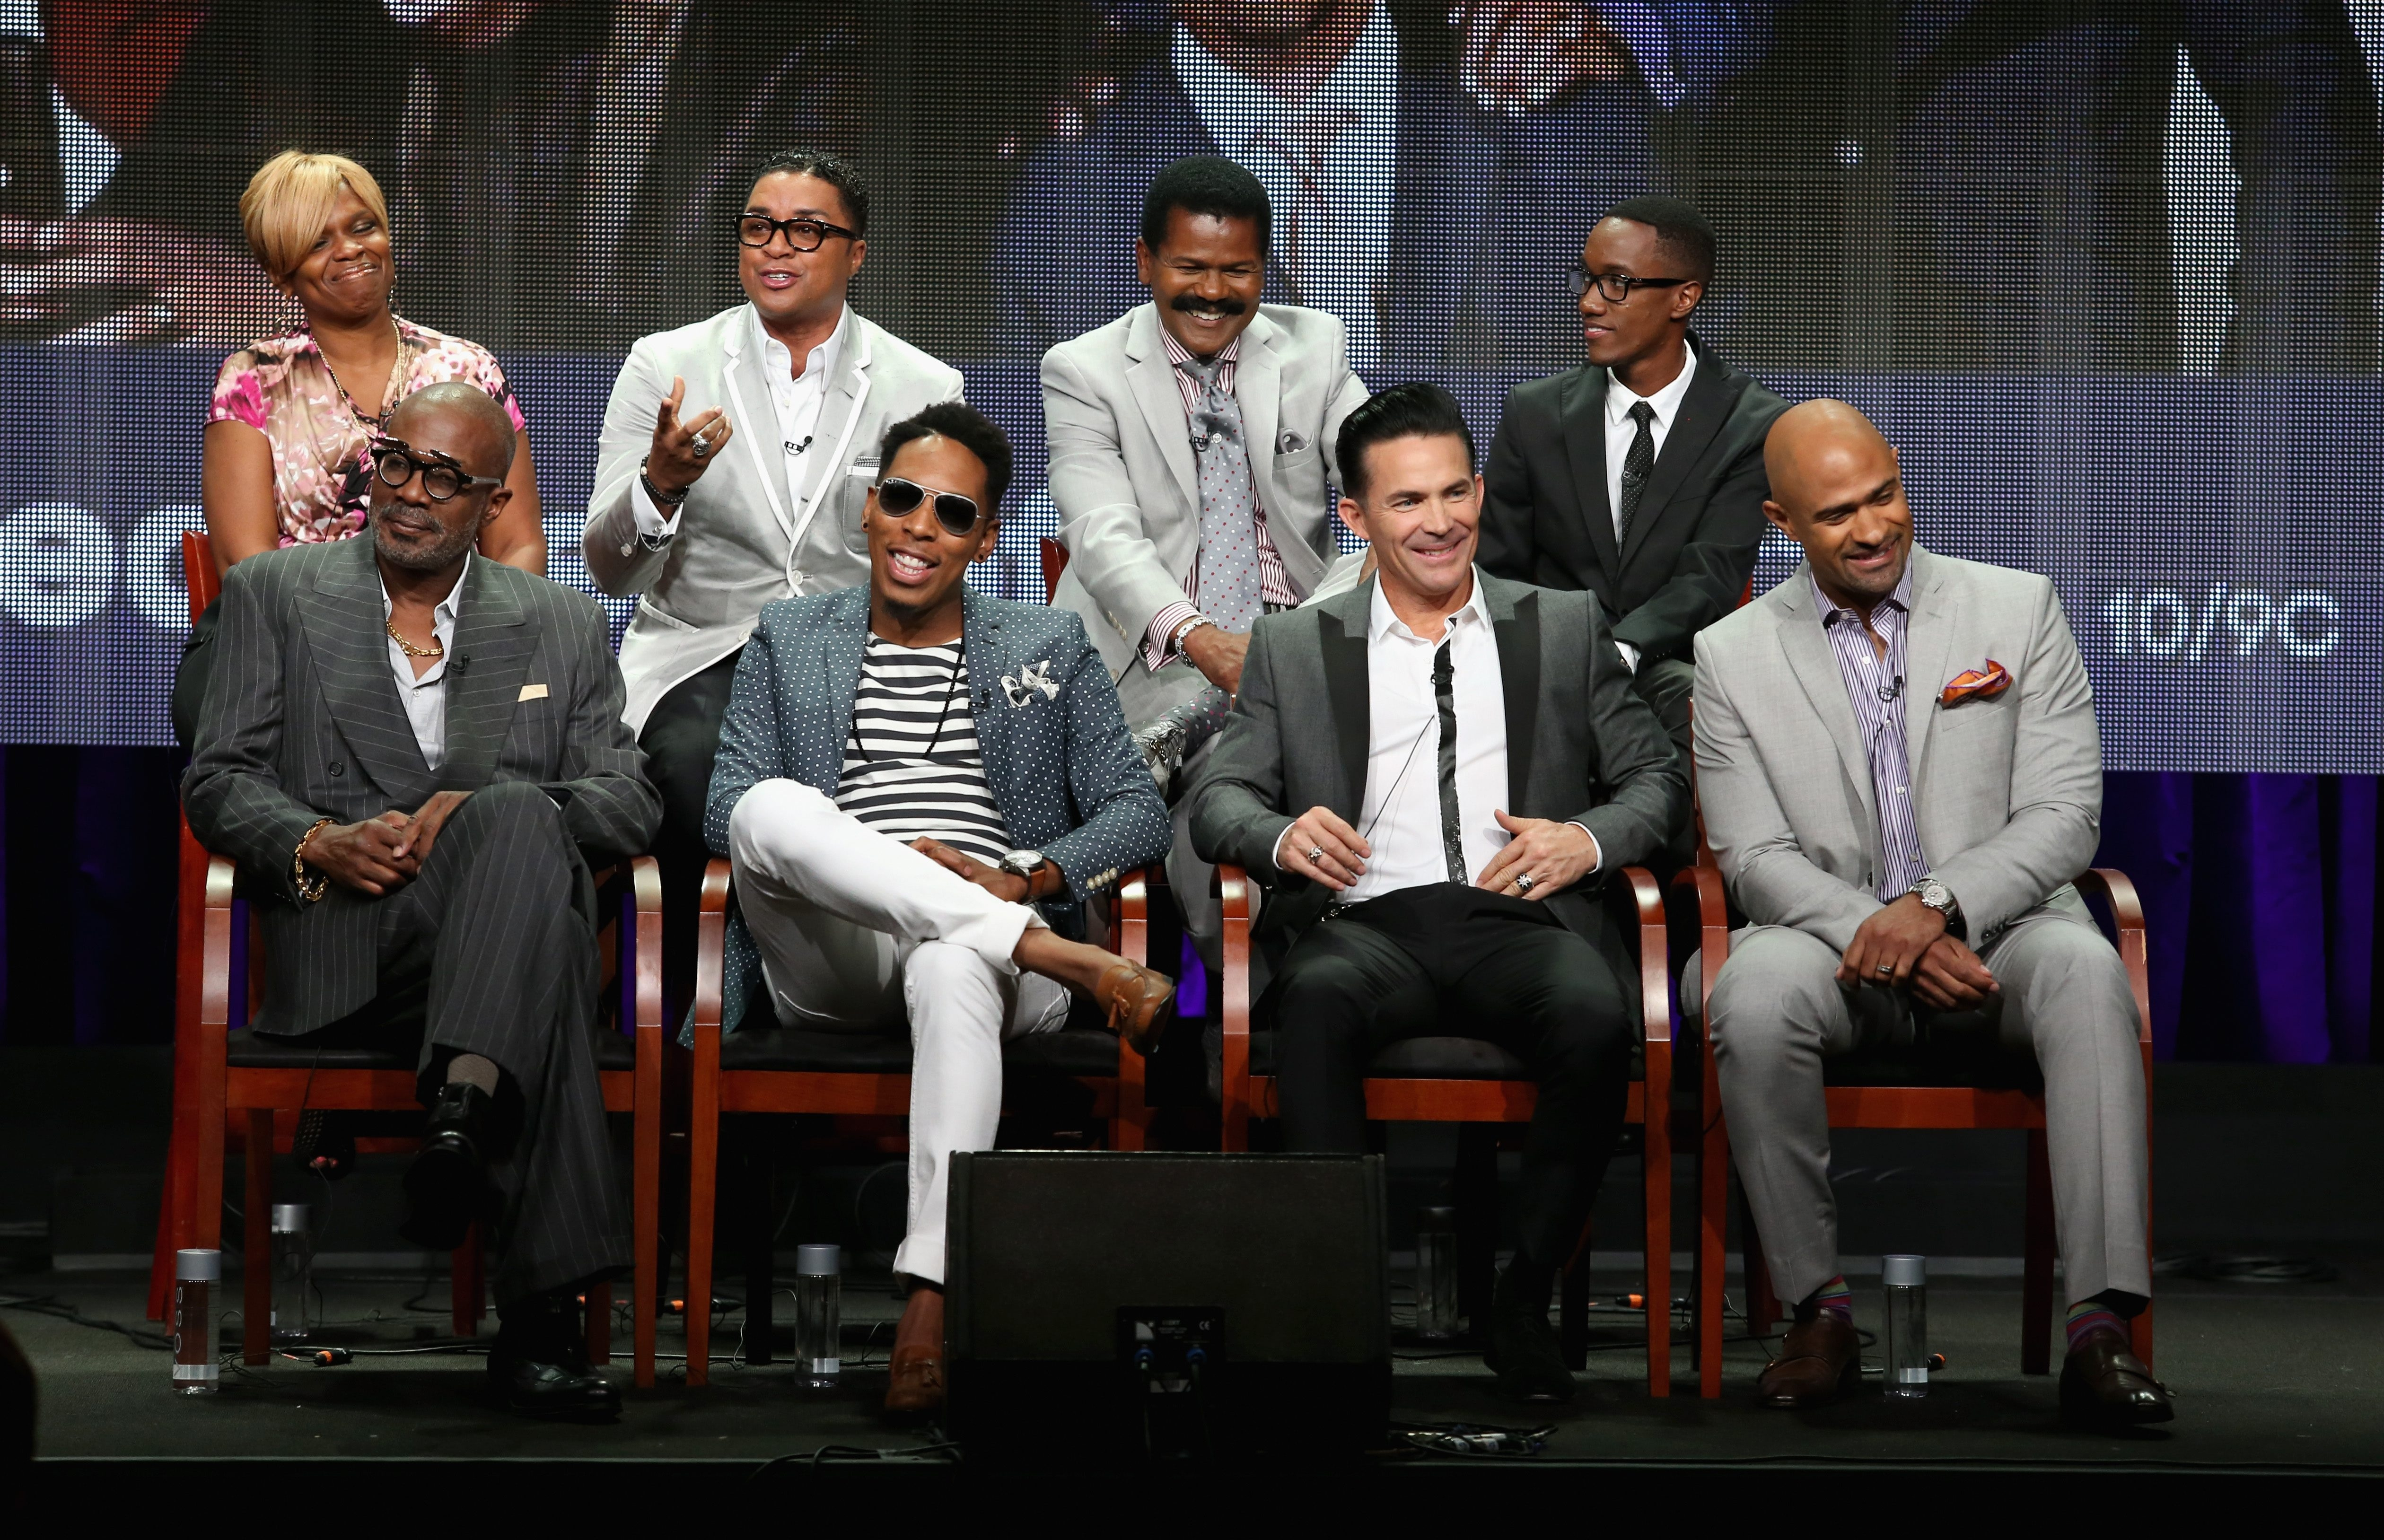 """At top, from left, executive producer Holly Carter, Bishop Clarence McClendon, Bishop Ron Gibson, producer Lemuel Plummer. Front, from left, Bishop Noel Jones, Minister Deitrick Haddon, Pastor Jay Haizlip and Pastor Wayne Chaney speak onstage at the """"Preachers of L.A."""" panel during the 2014 Summer Television Critics Association at The Beverly Hilton Hotel in July."""